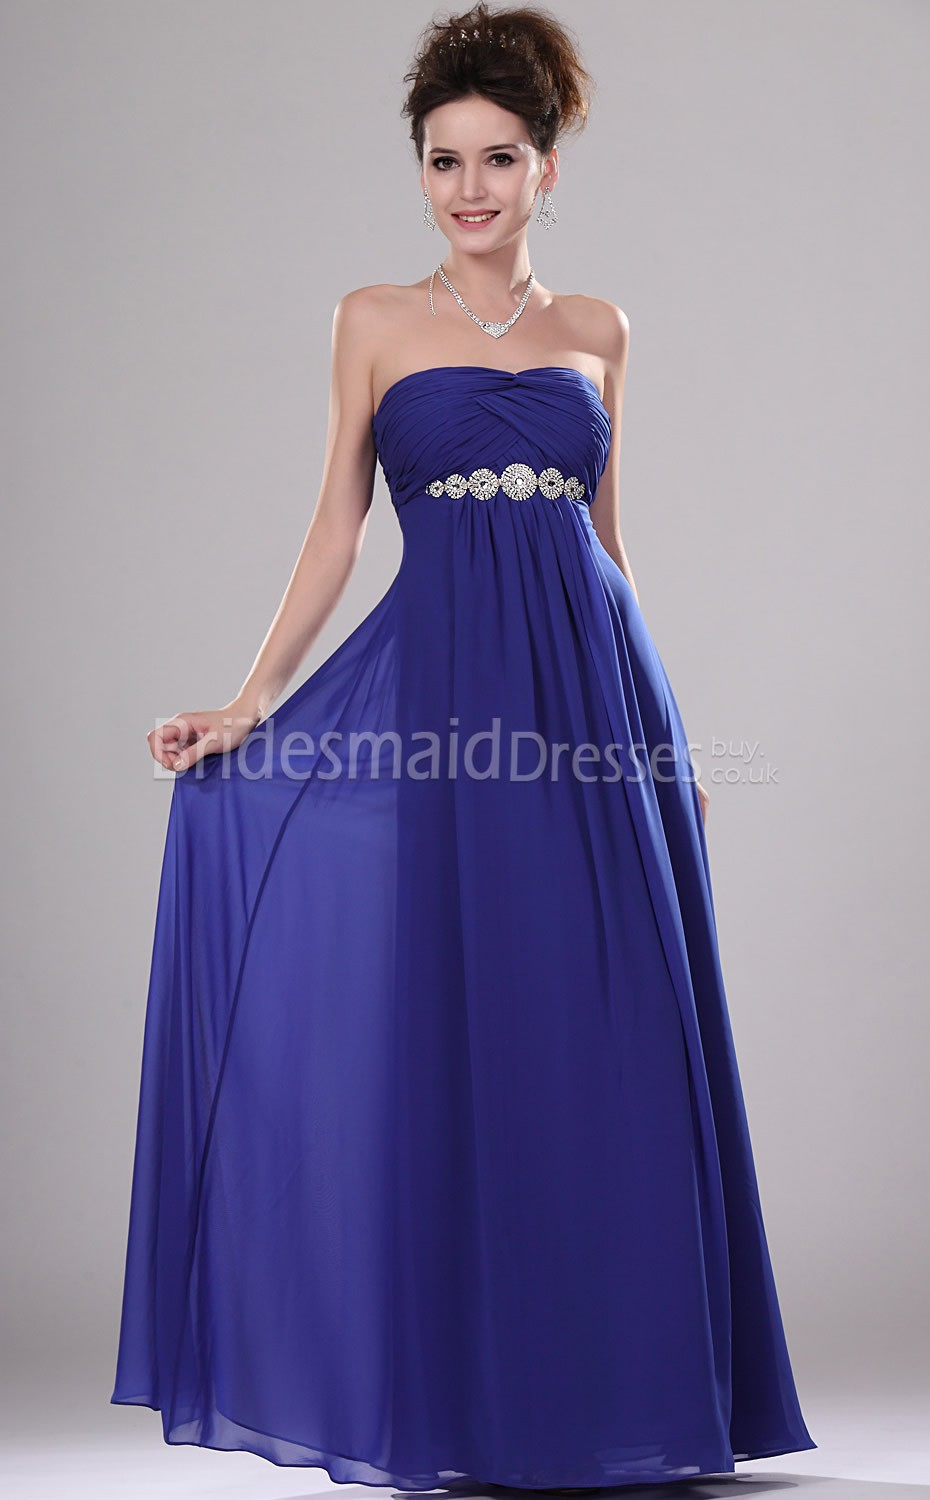 Royal Blue Bridesmaid Dresses Uk Shopping Guide We Are